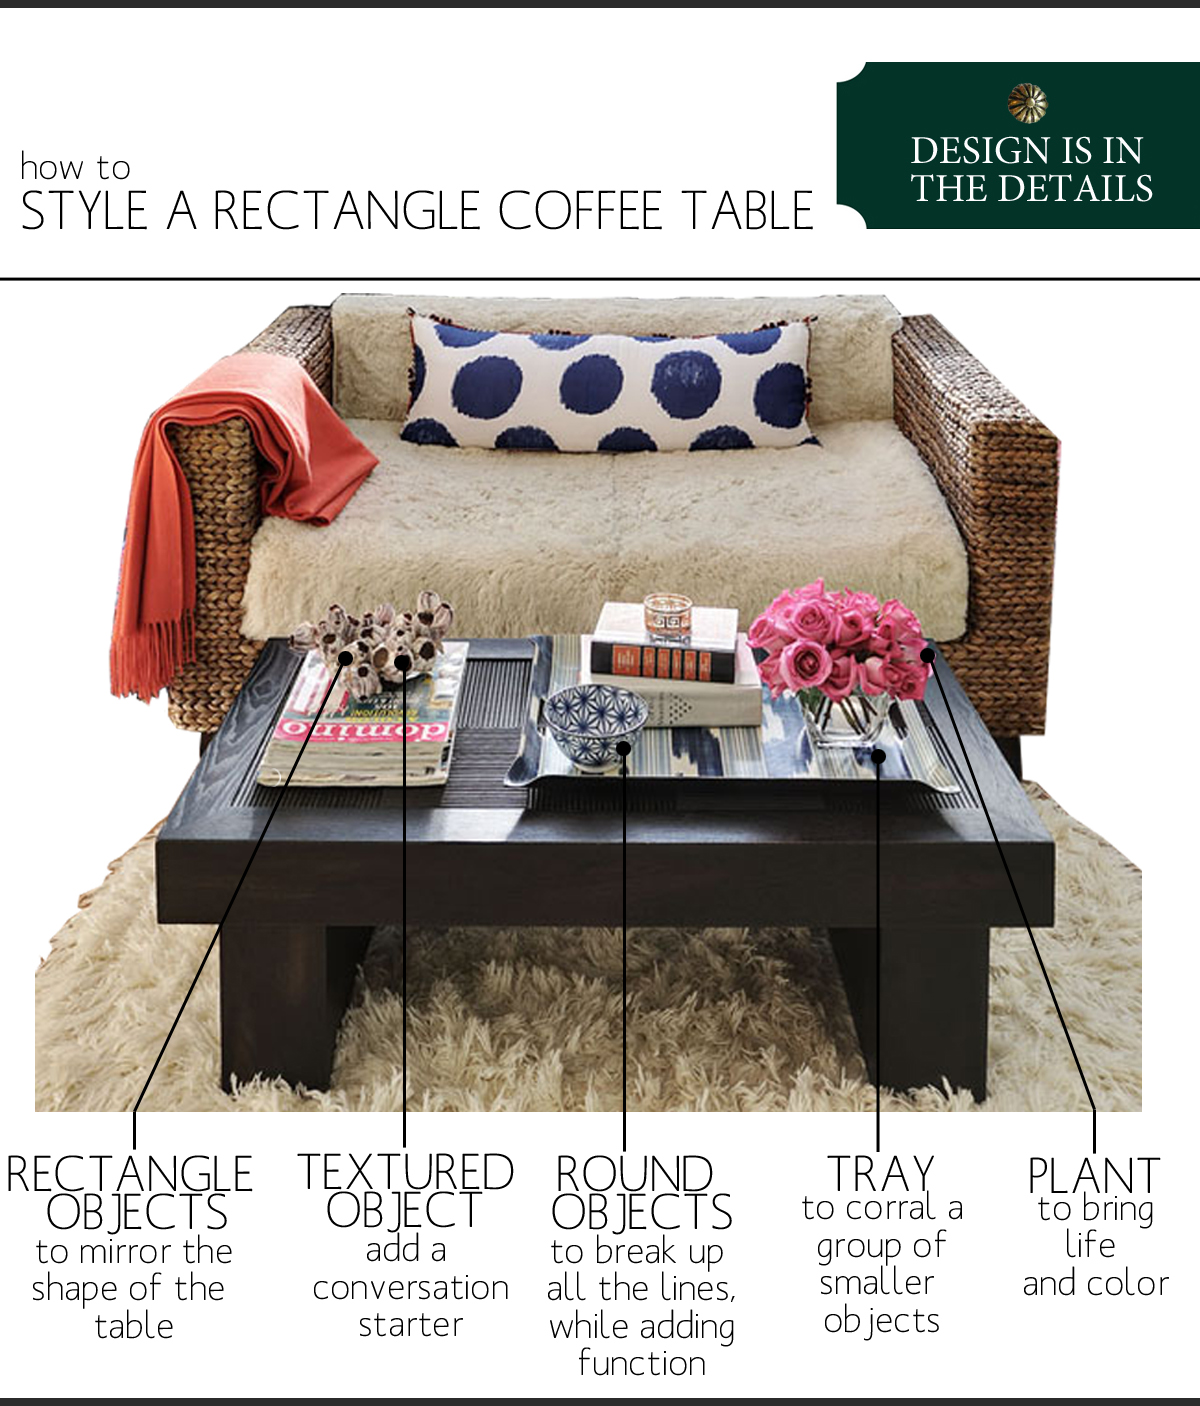 How To Style A Coffee Table how to style a rectangle coffee table | the anatomy of design